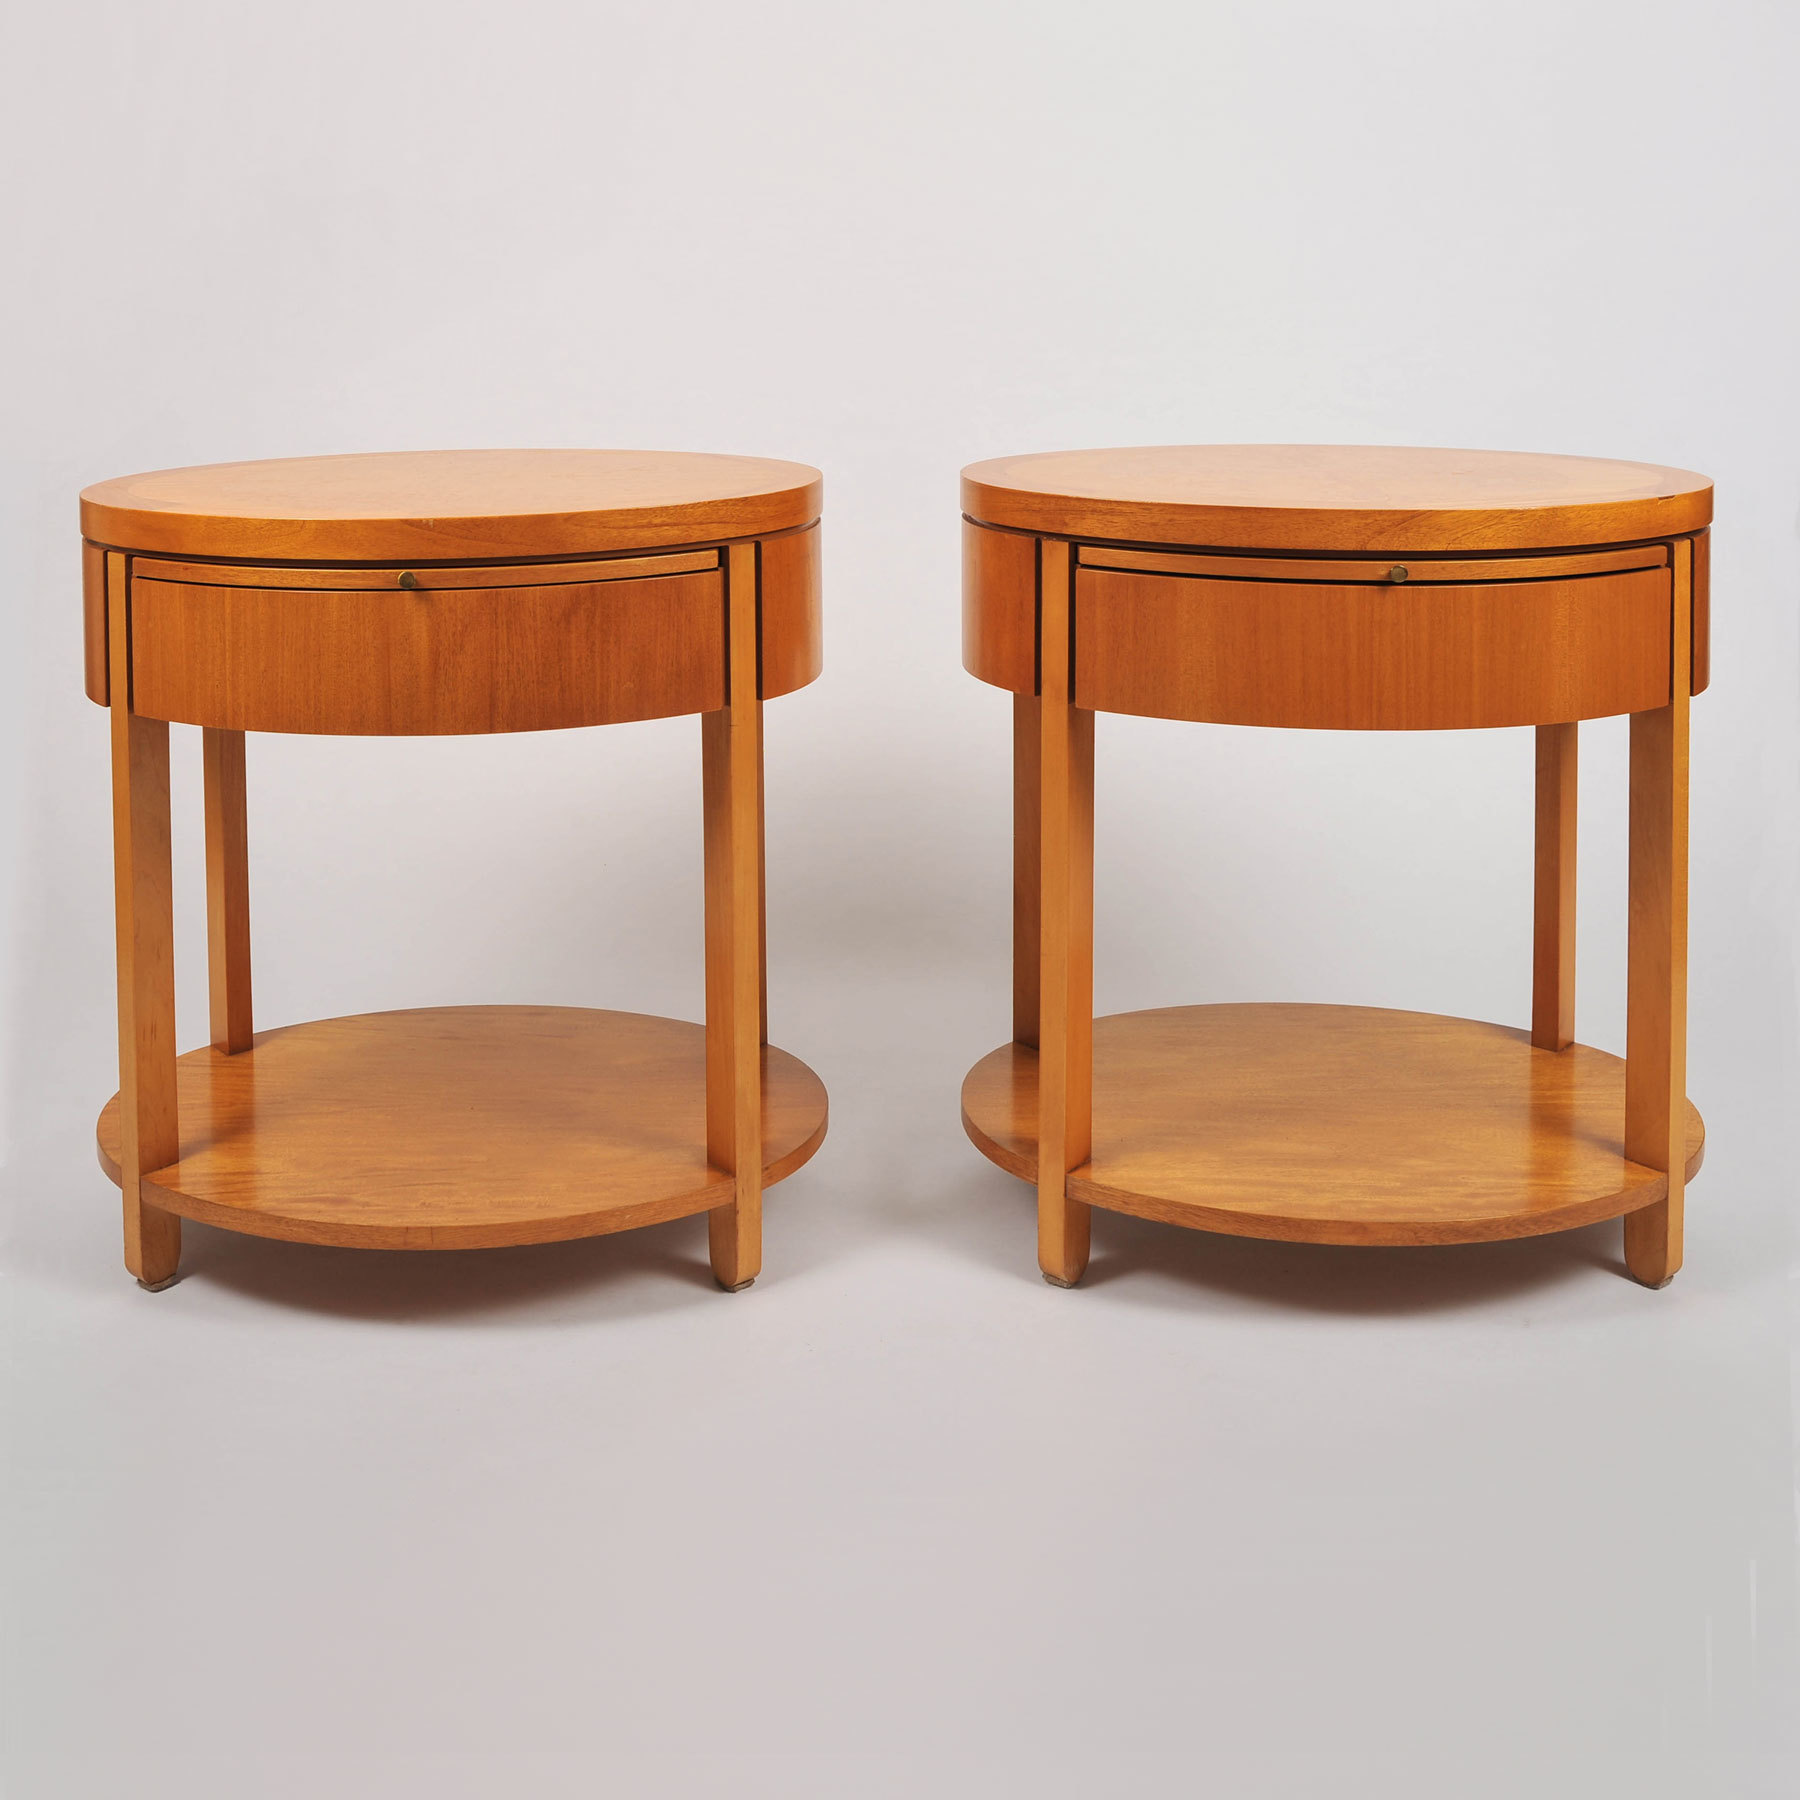 The image for Pair Oval Bedside Tables 001 Vw